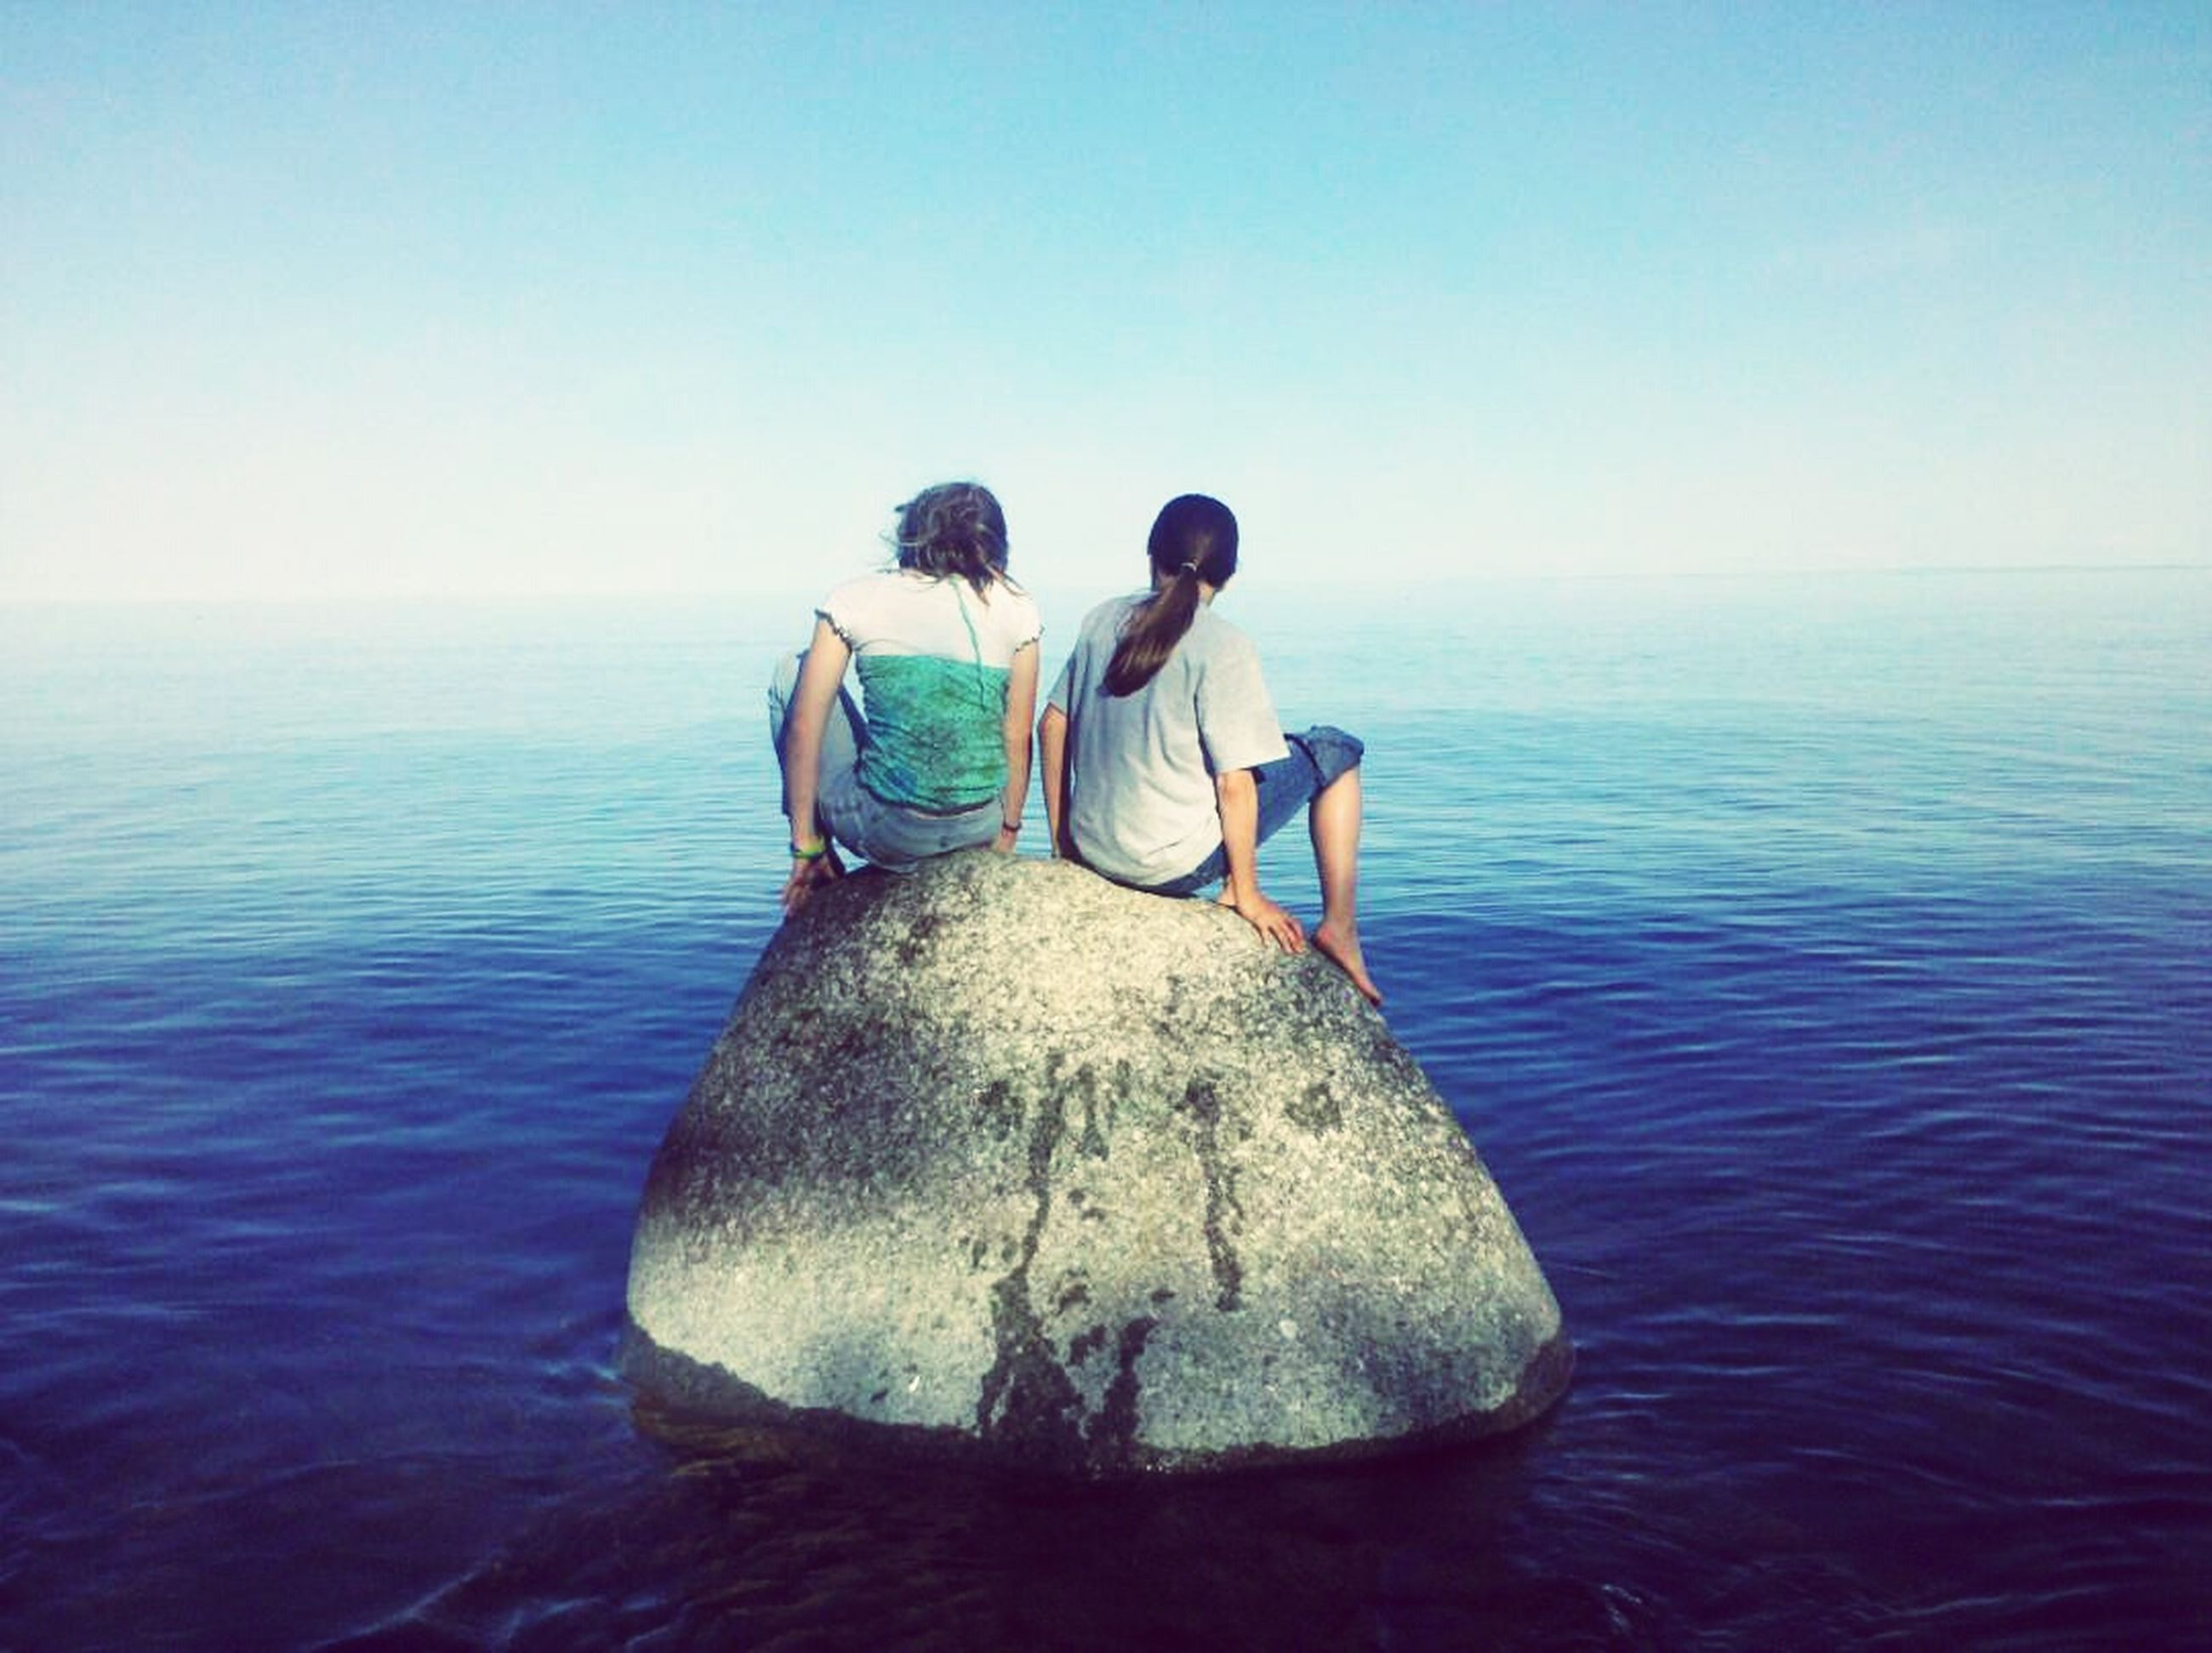 water, sea, rear view, horizon over water, leisure activity, lifestyles, tranquility, tranquil scene, blue, clear sky, men, scenics, nature, beauty in nature, waterfront, rippled, full length, sky